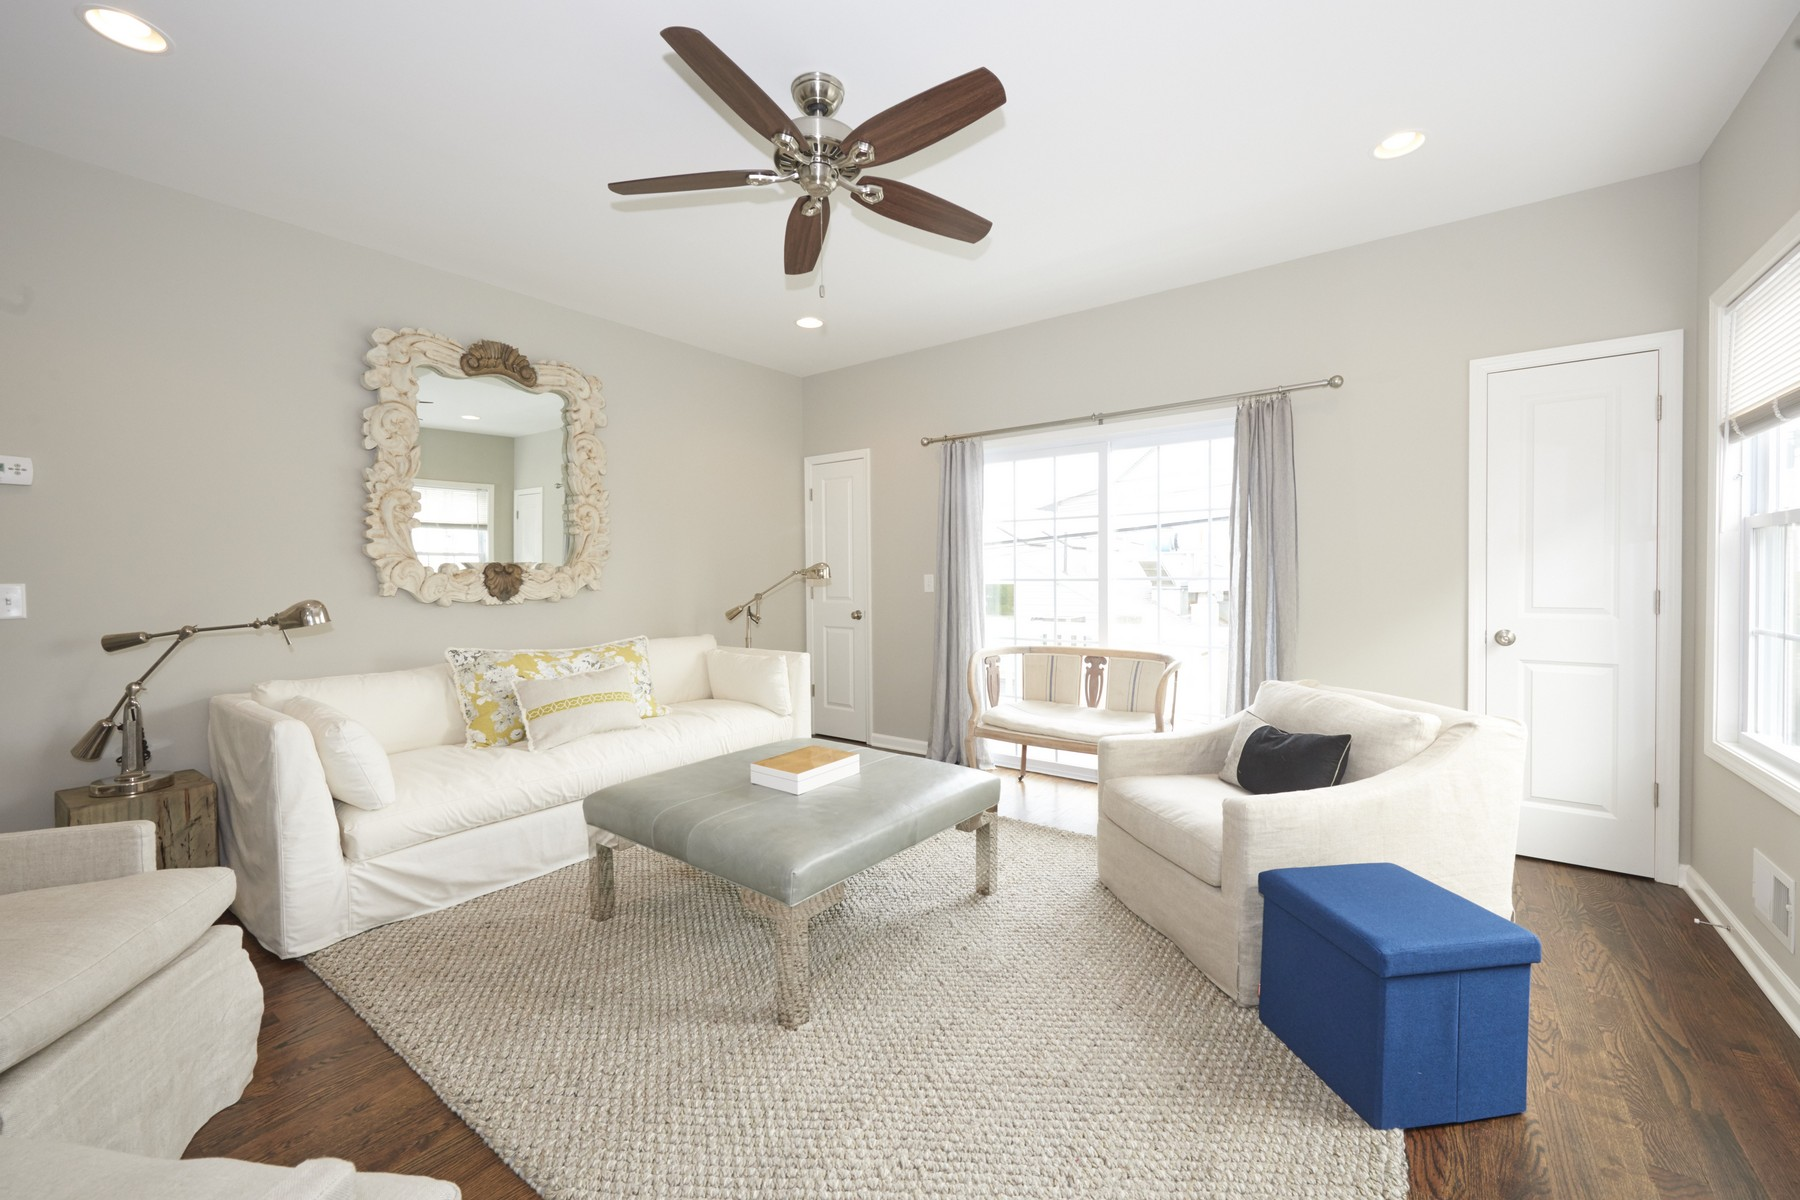 Single Family Homes for Rent at Live in Casual Elegance Oceanside 8 E Church St Sea Bright, New Jersey 07760 United States